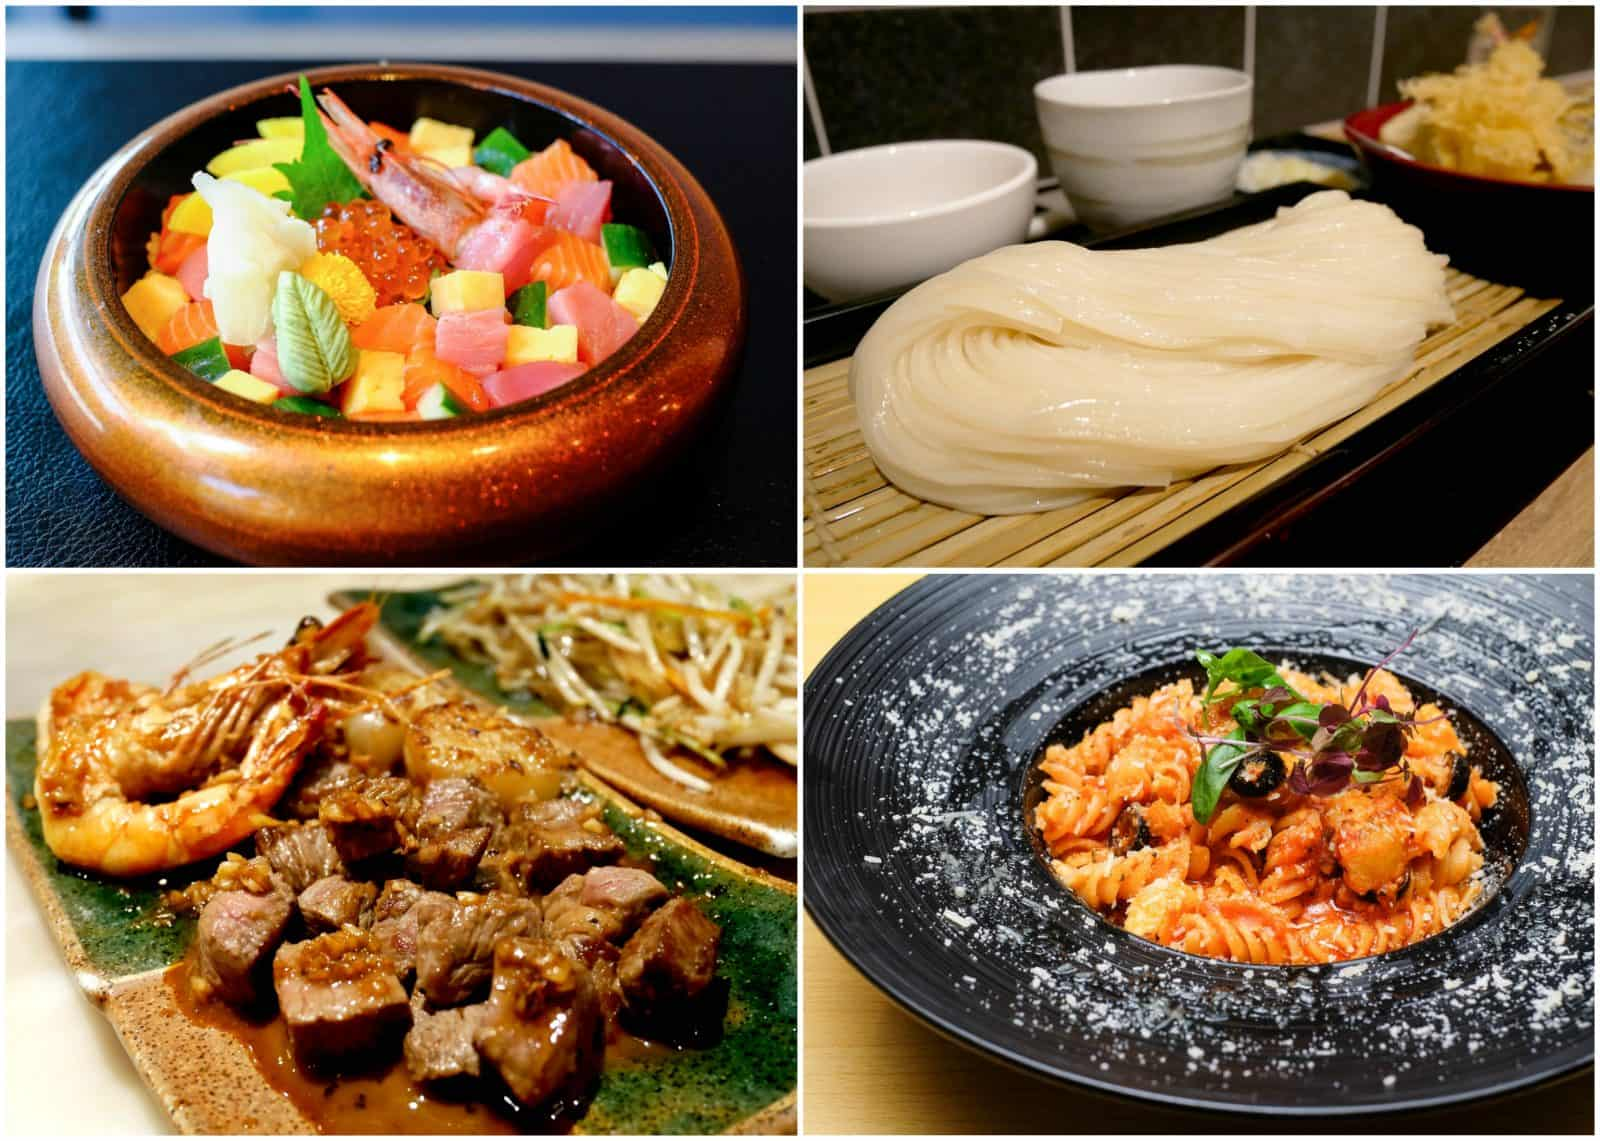 14 Nihon-thentic Dishes in Japan Food Halls that Transport You to Japan